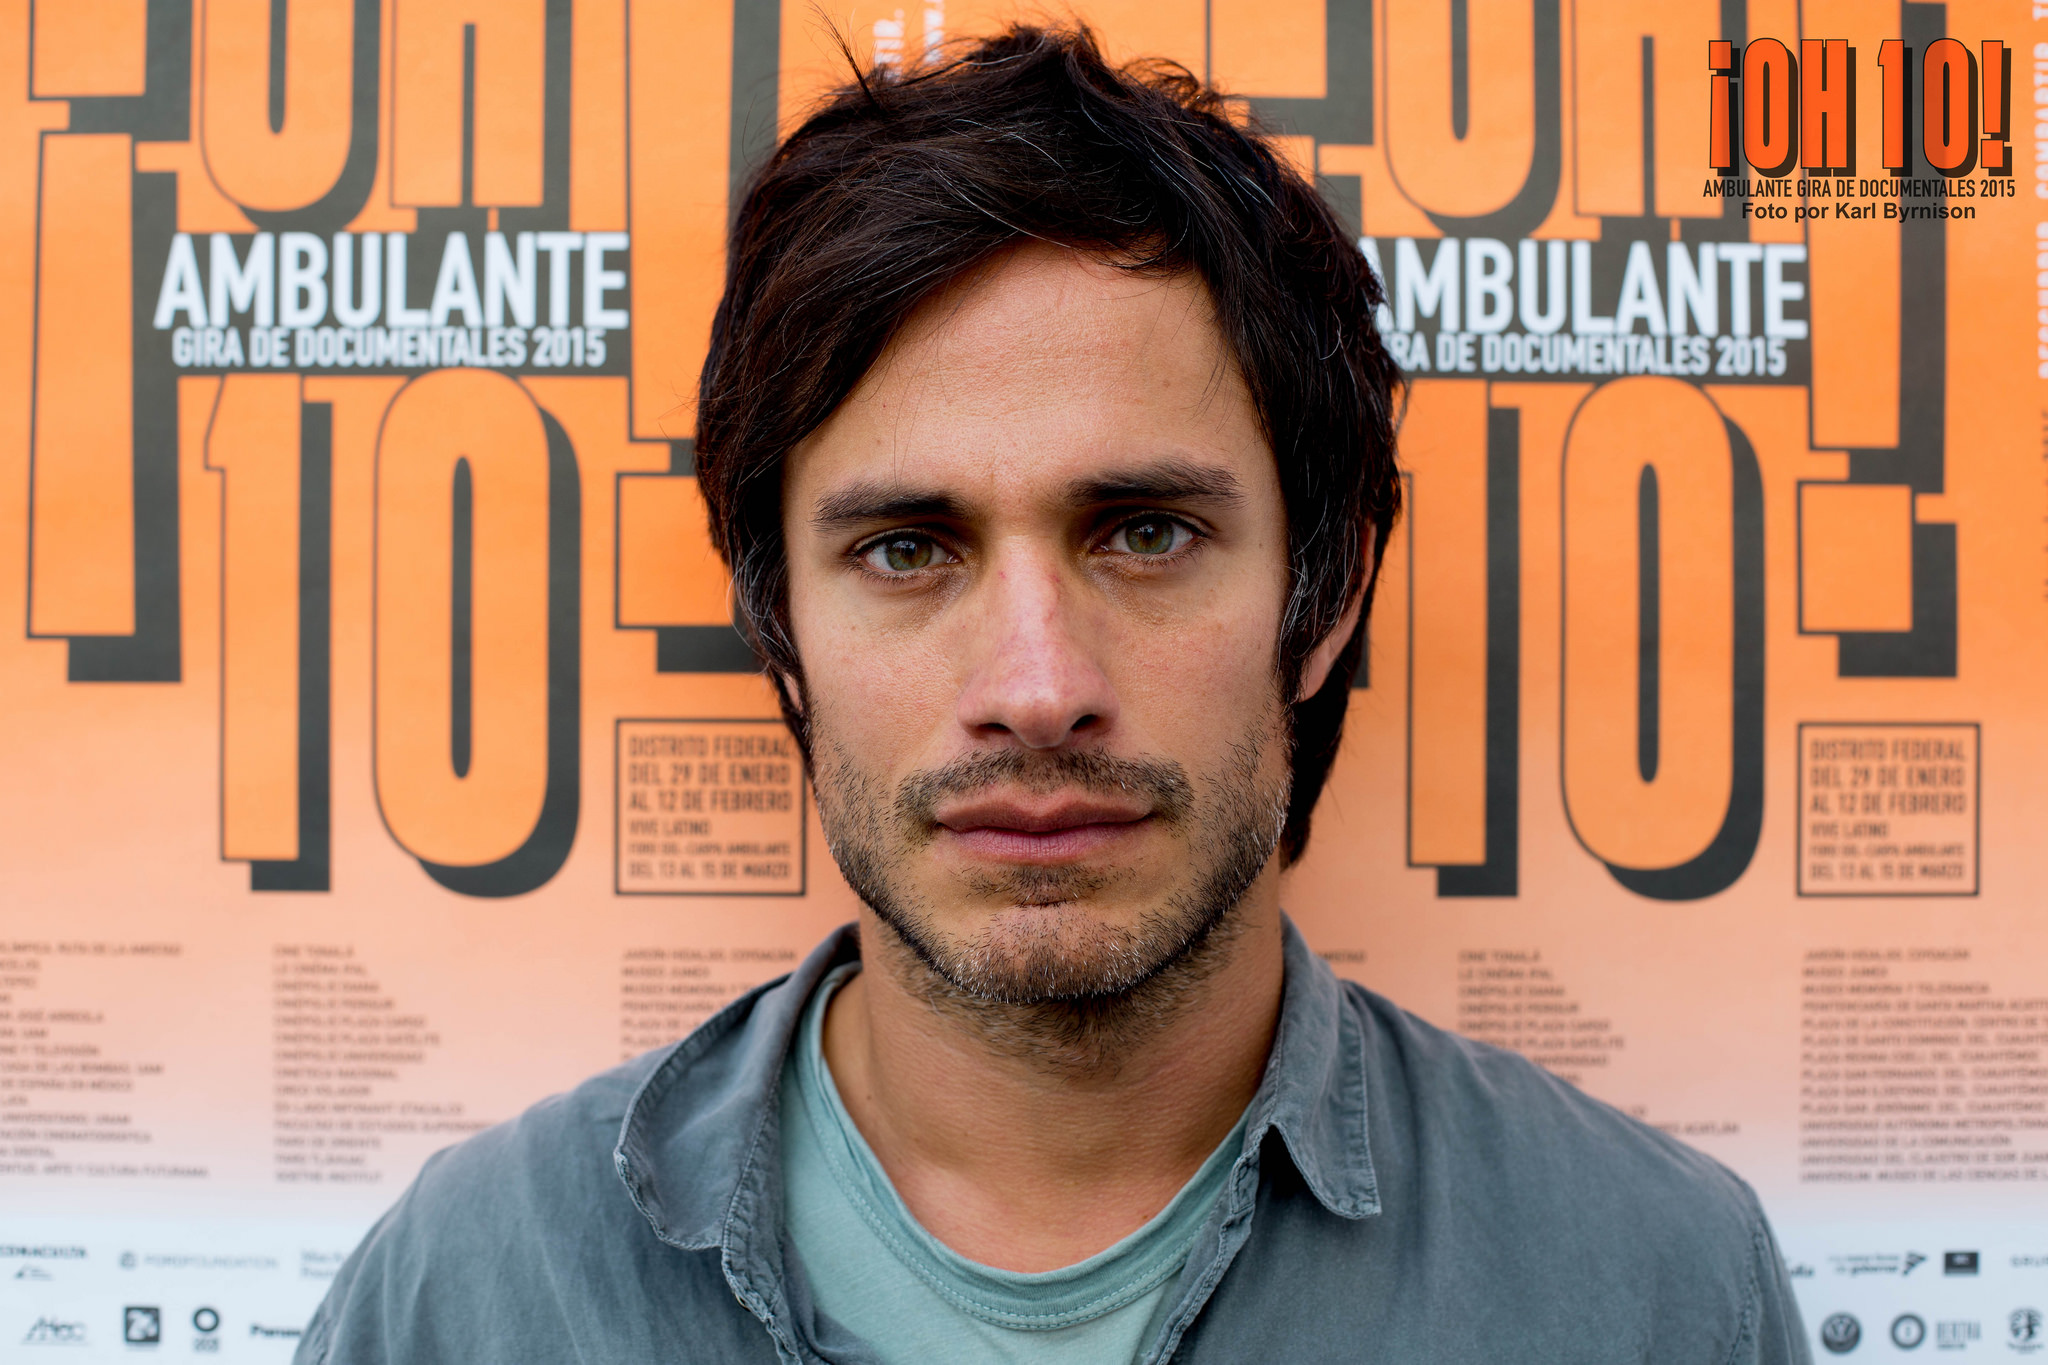 Mexican actor Gael Garcia Bernal. Source: Festival Ambulante. Available  here .